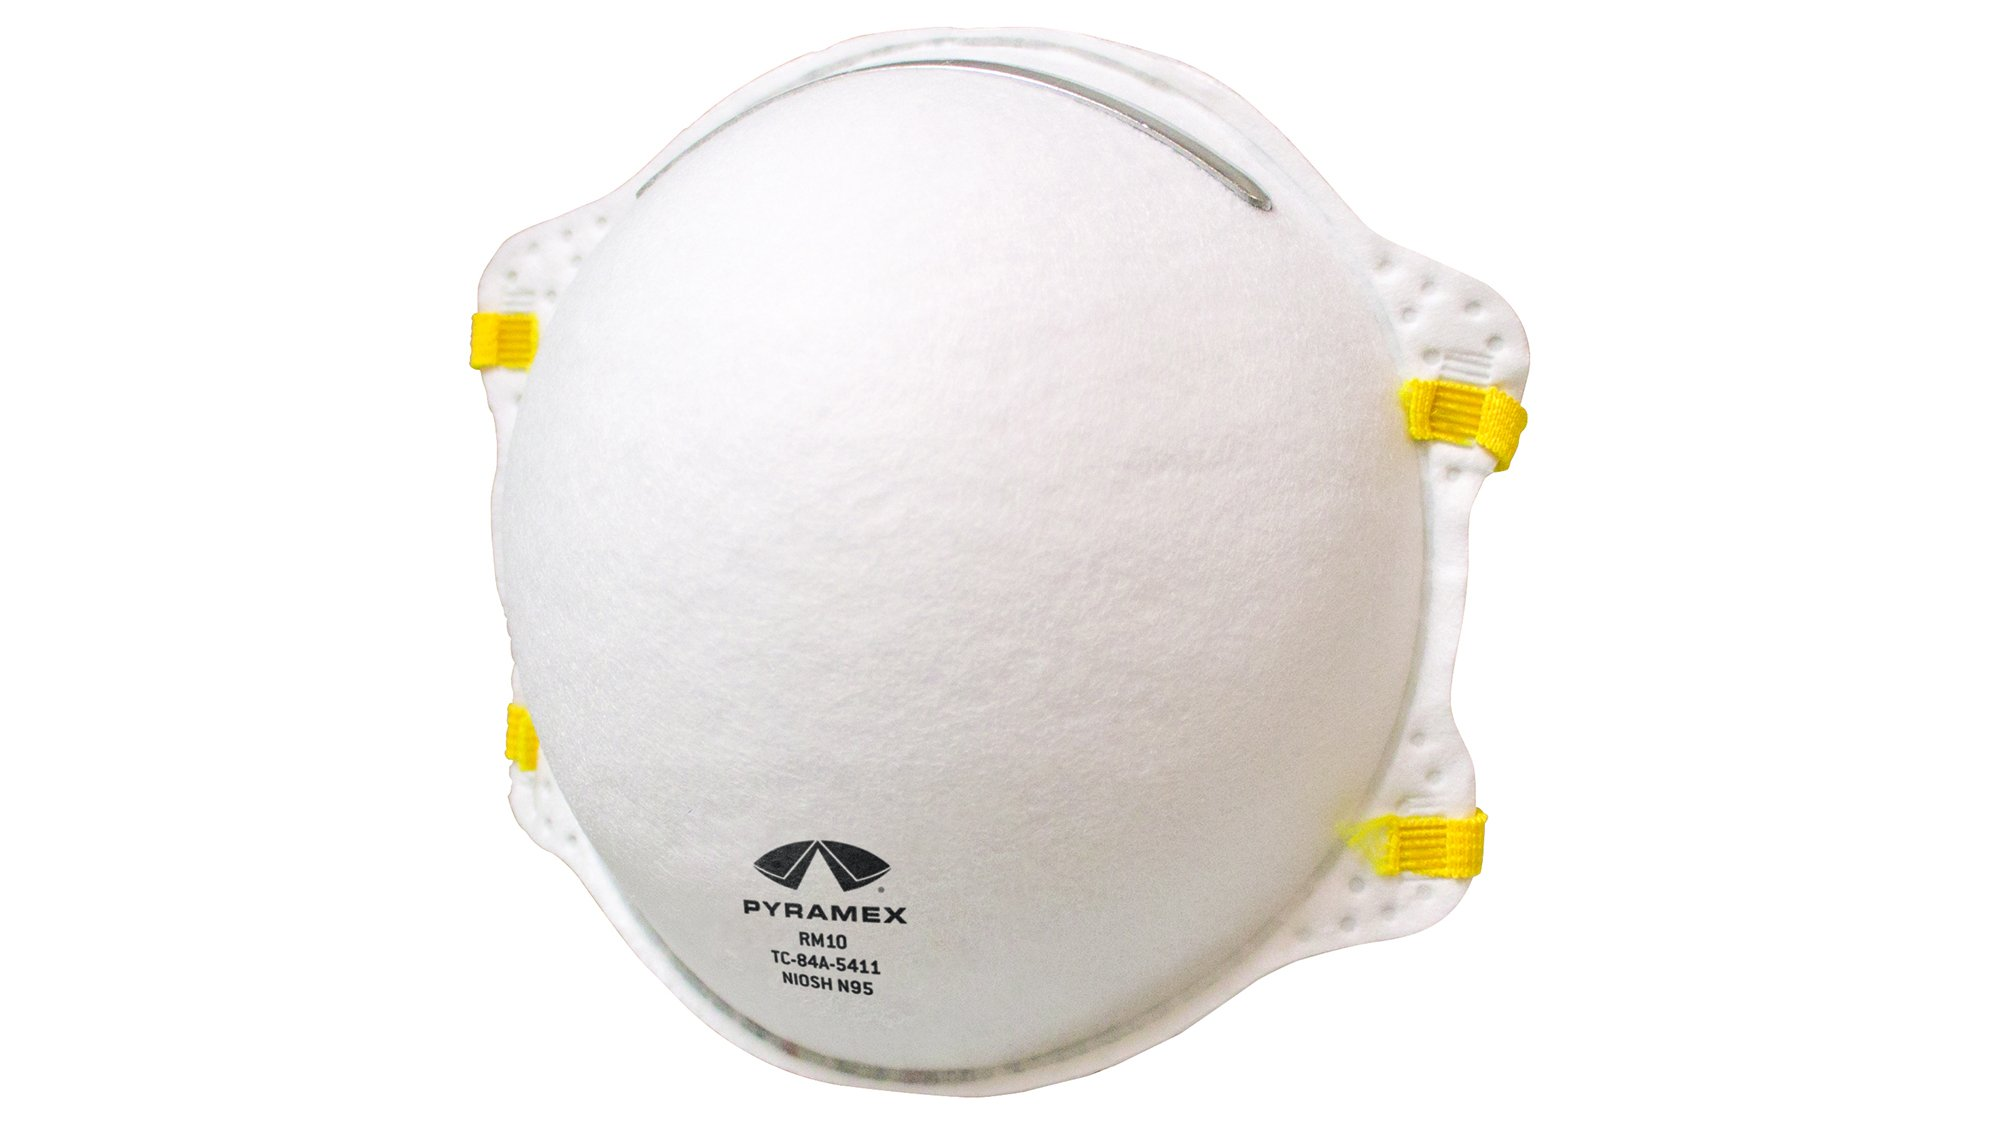 Pyramex RM10 N95 Disposable Cone Respirator, Clamshell Packaging, 3 Pack